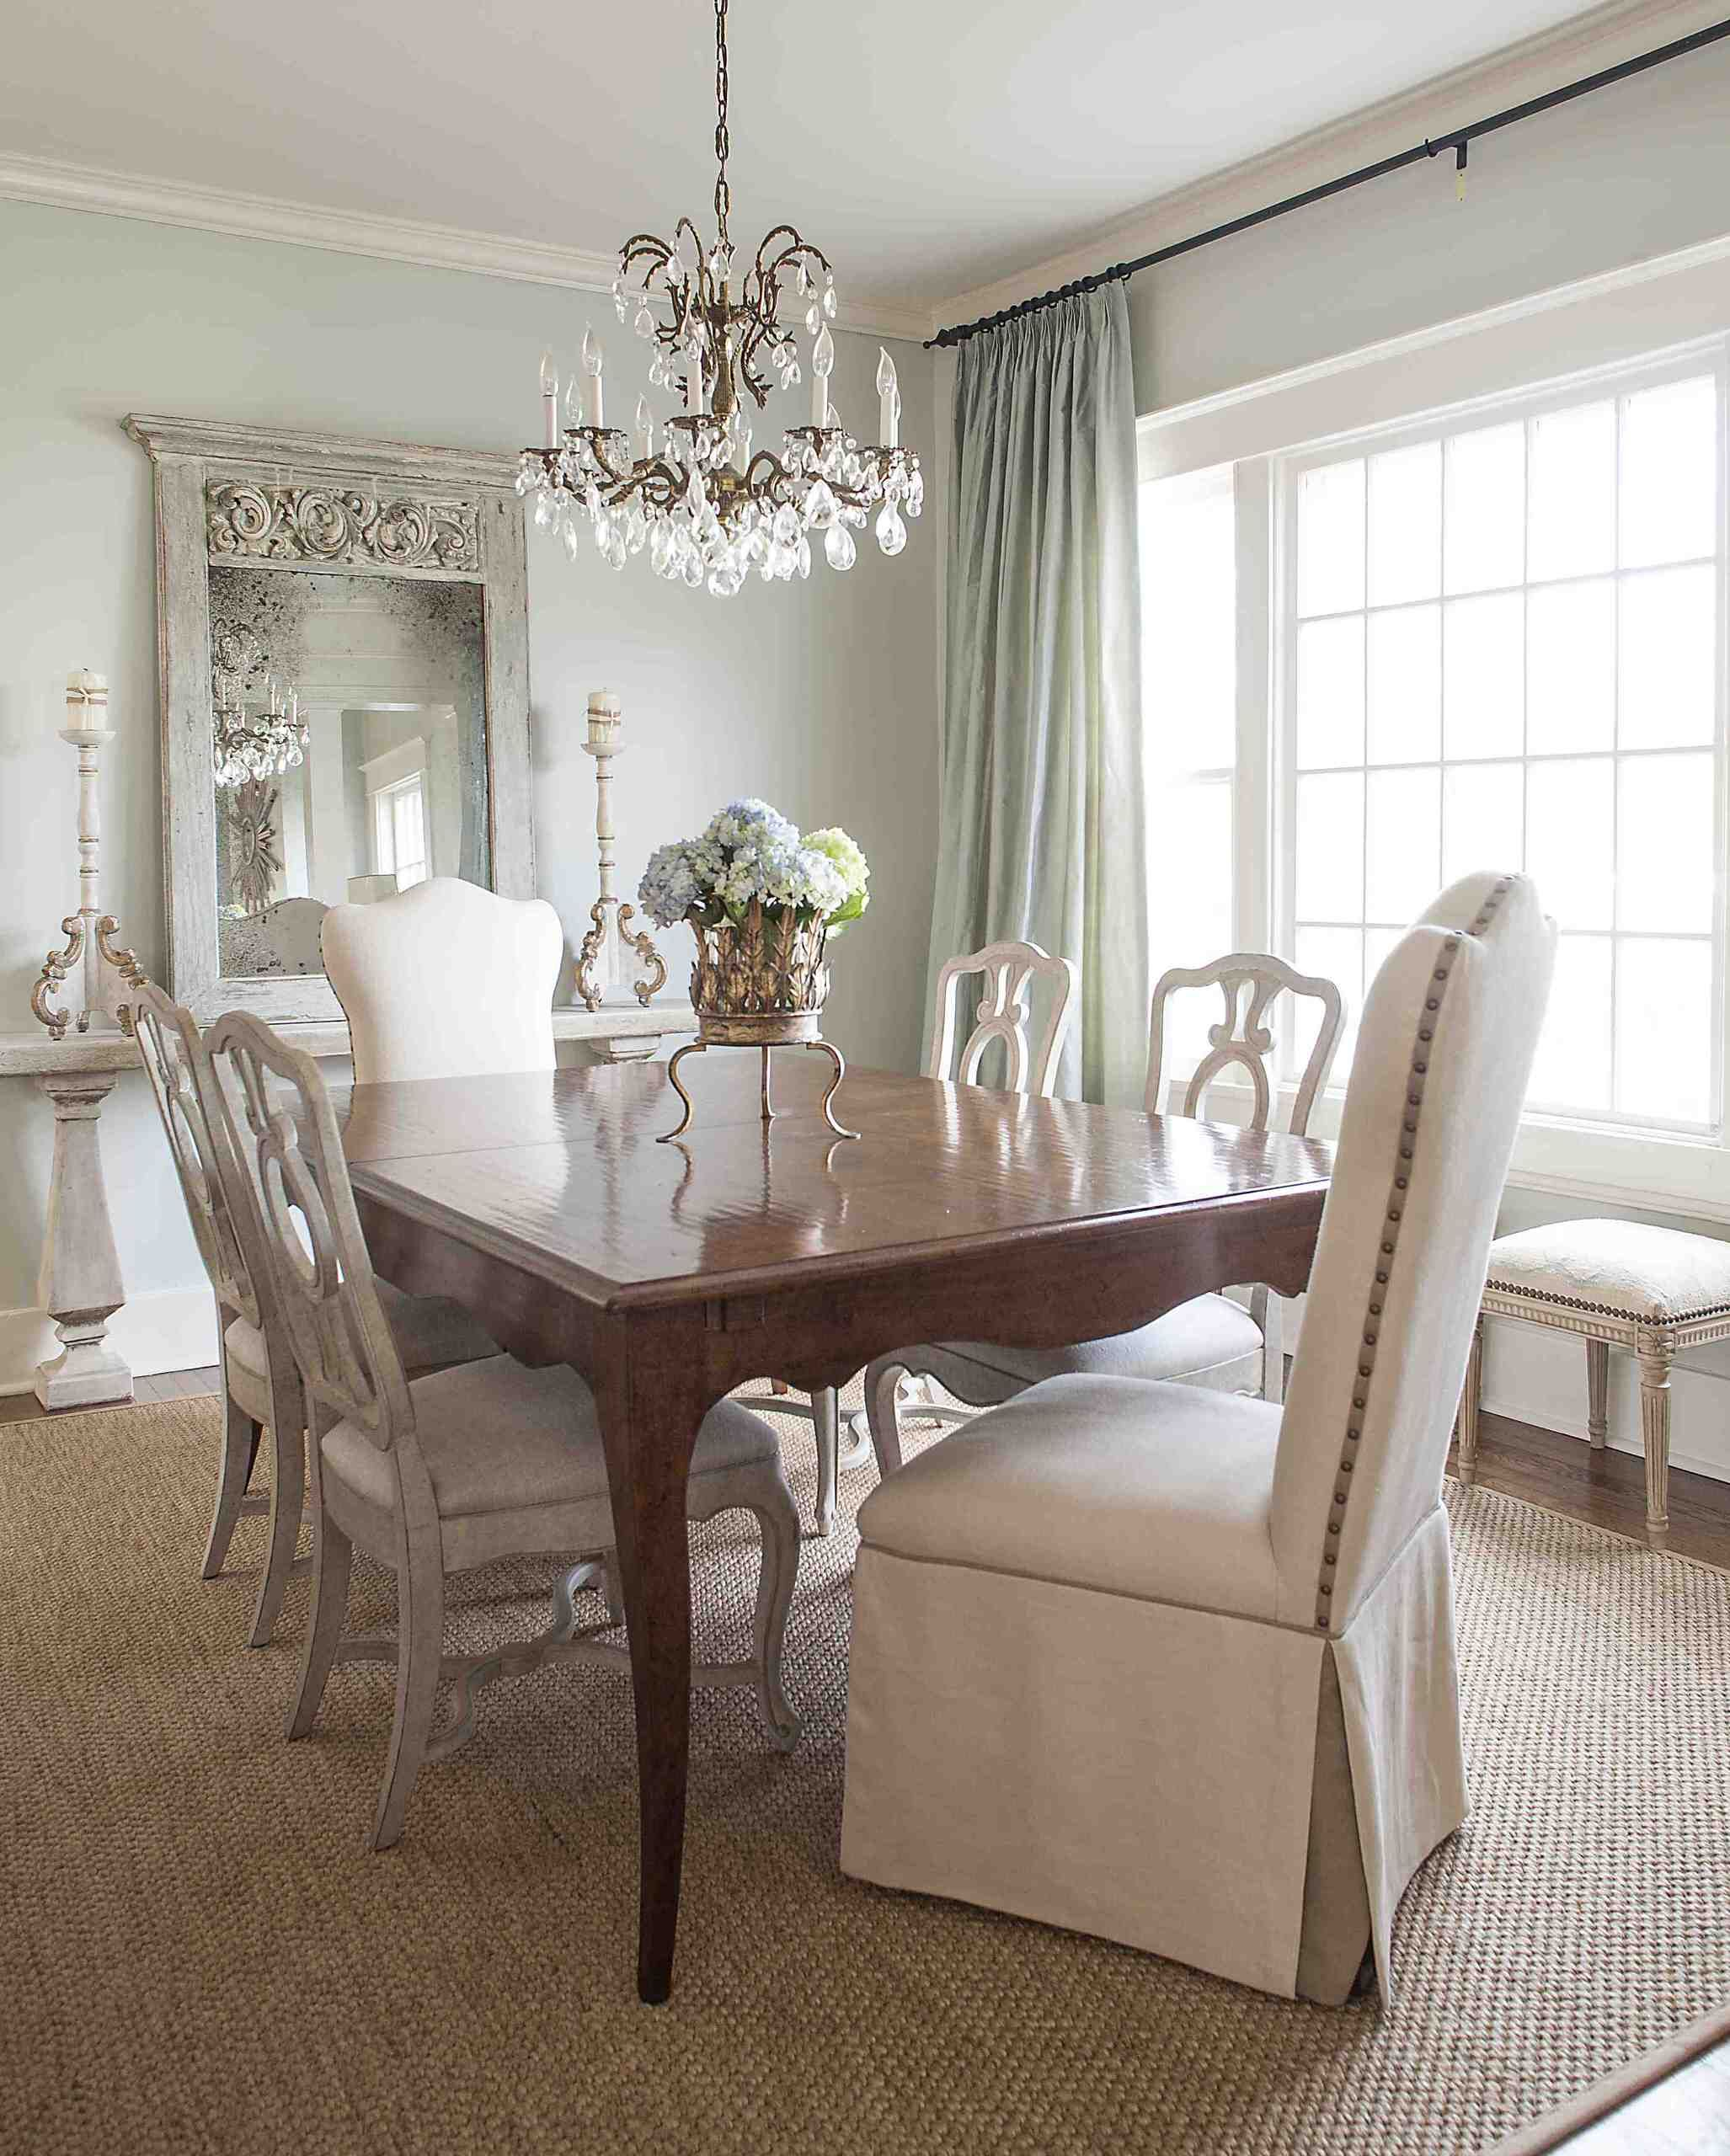 The Latest Shabby Chic Dining Chairs for Modern Dining Room Design